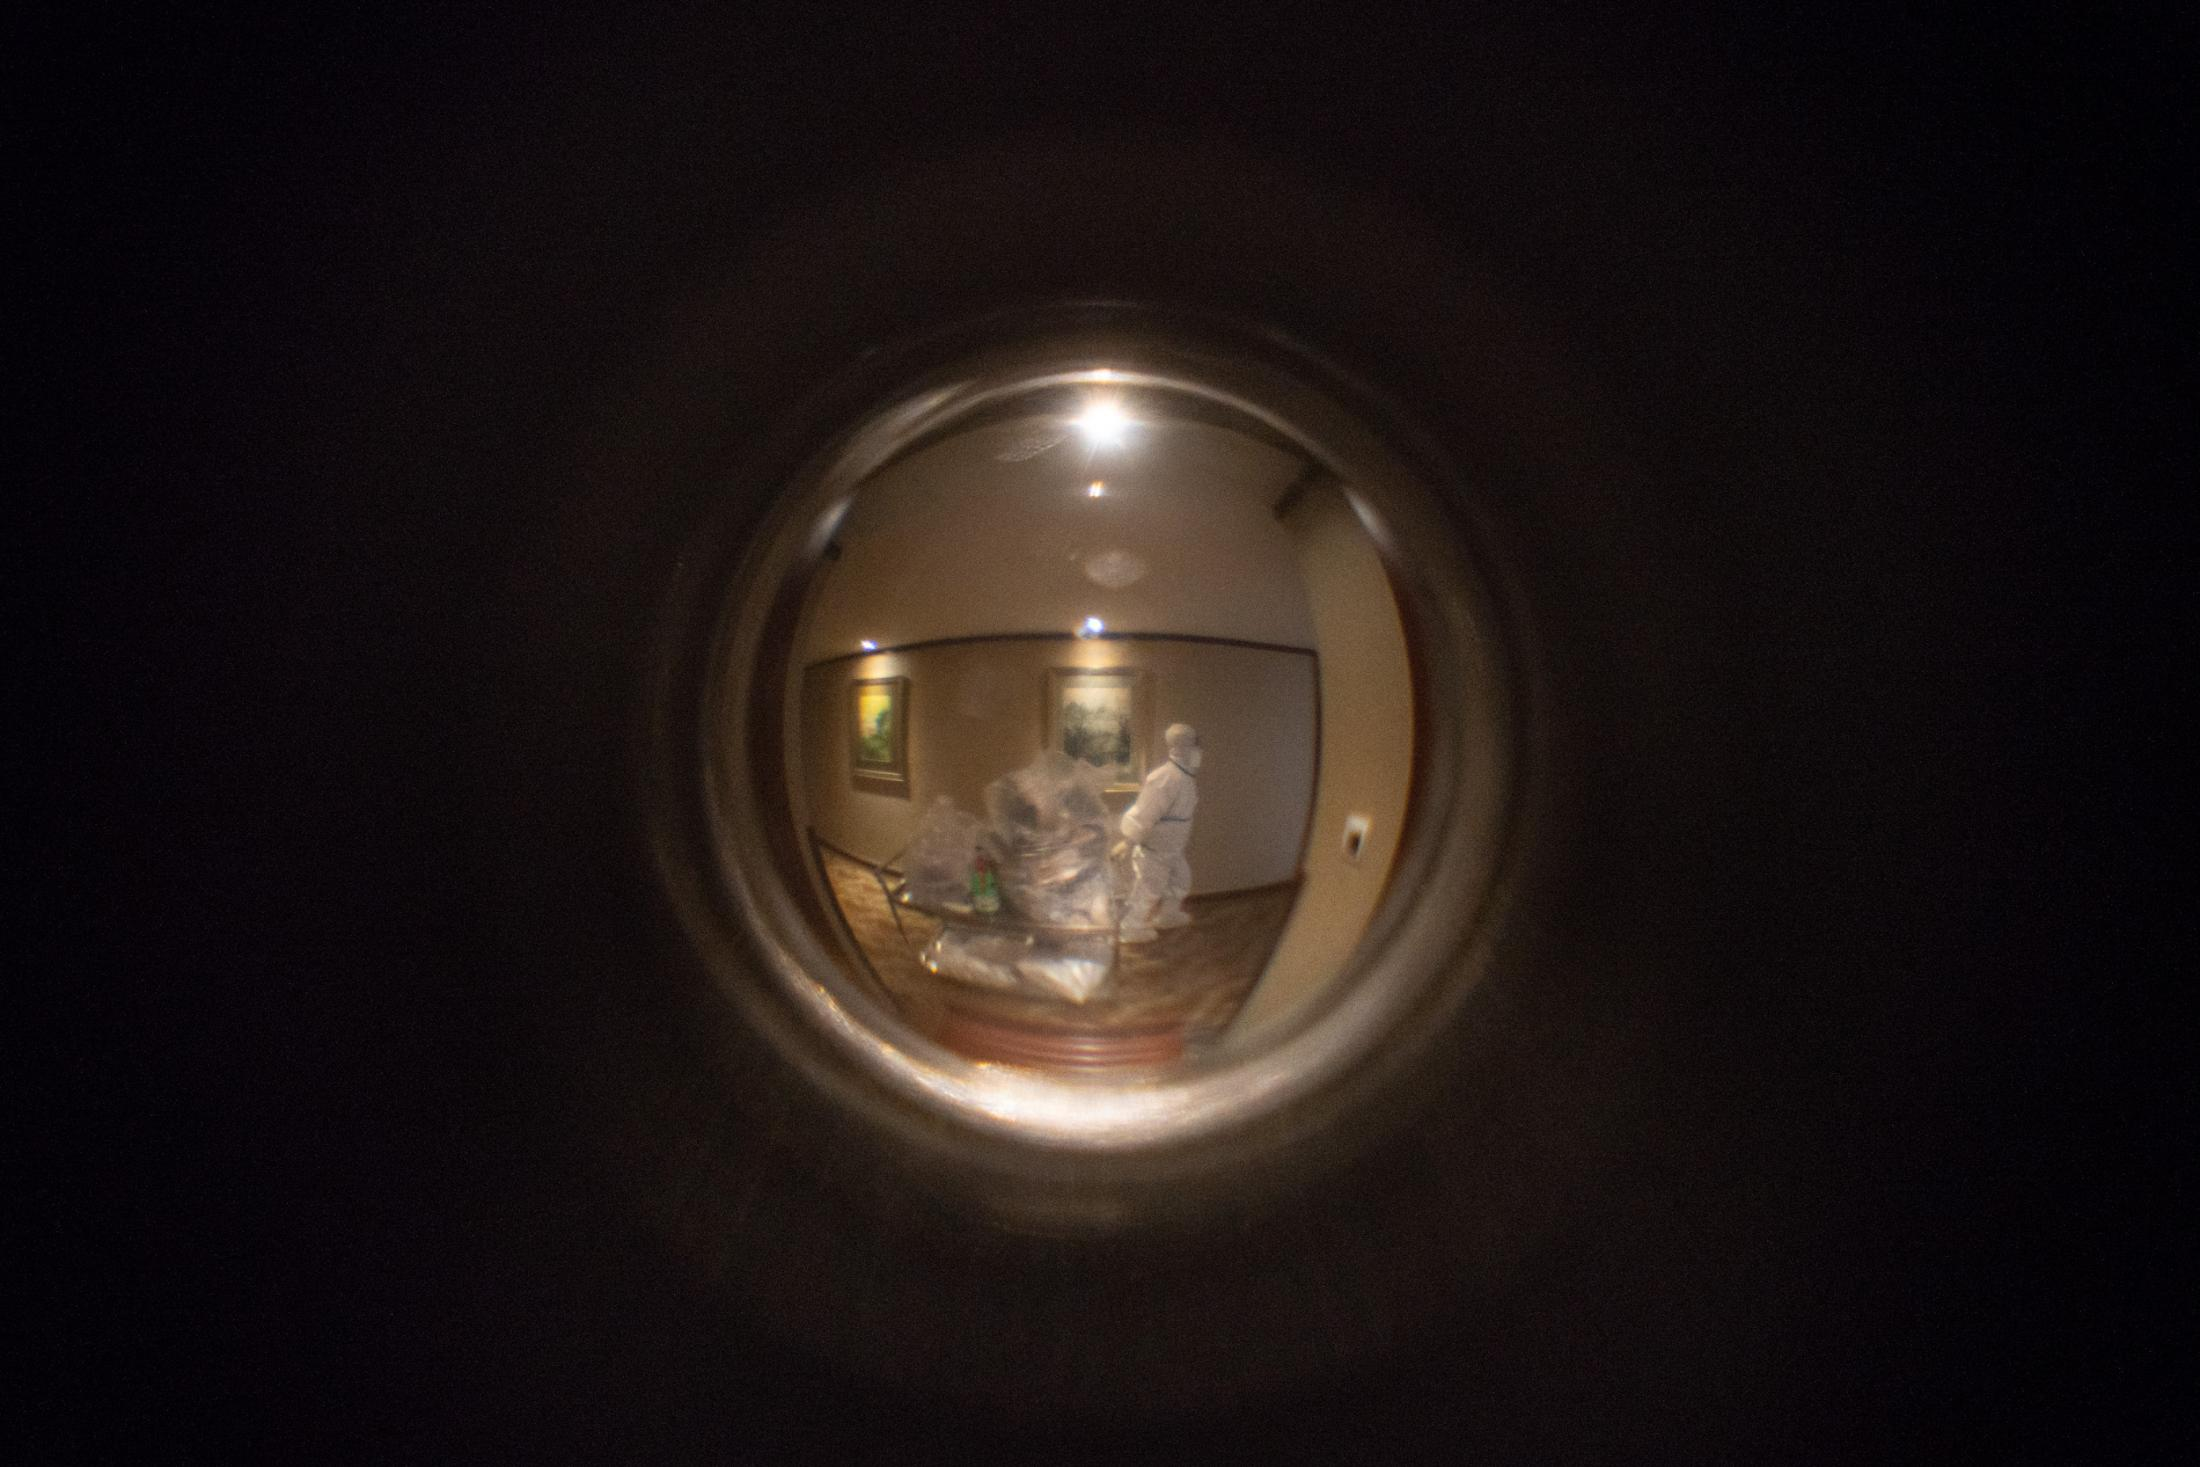 Seen through the peephole: a hotel staff dragging a cart full of trash taken from outside of each hotel rooms.